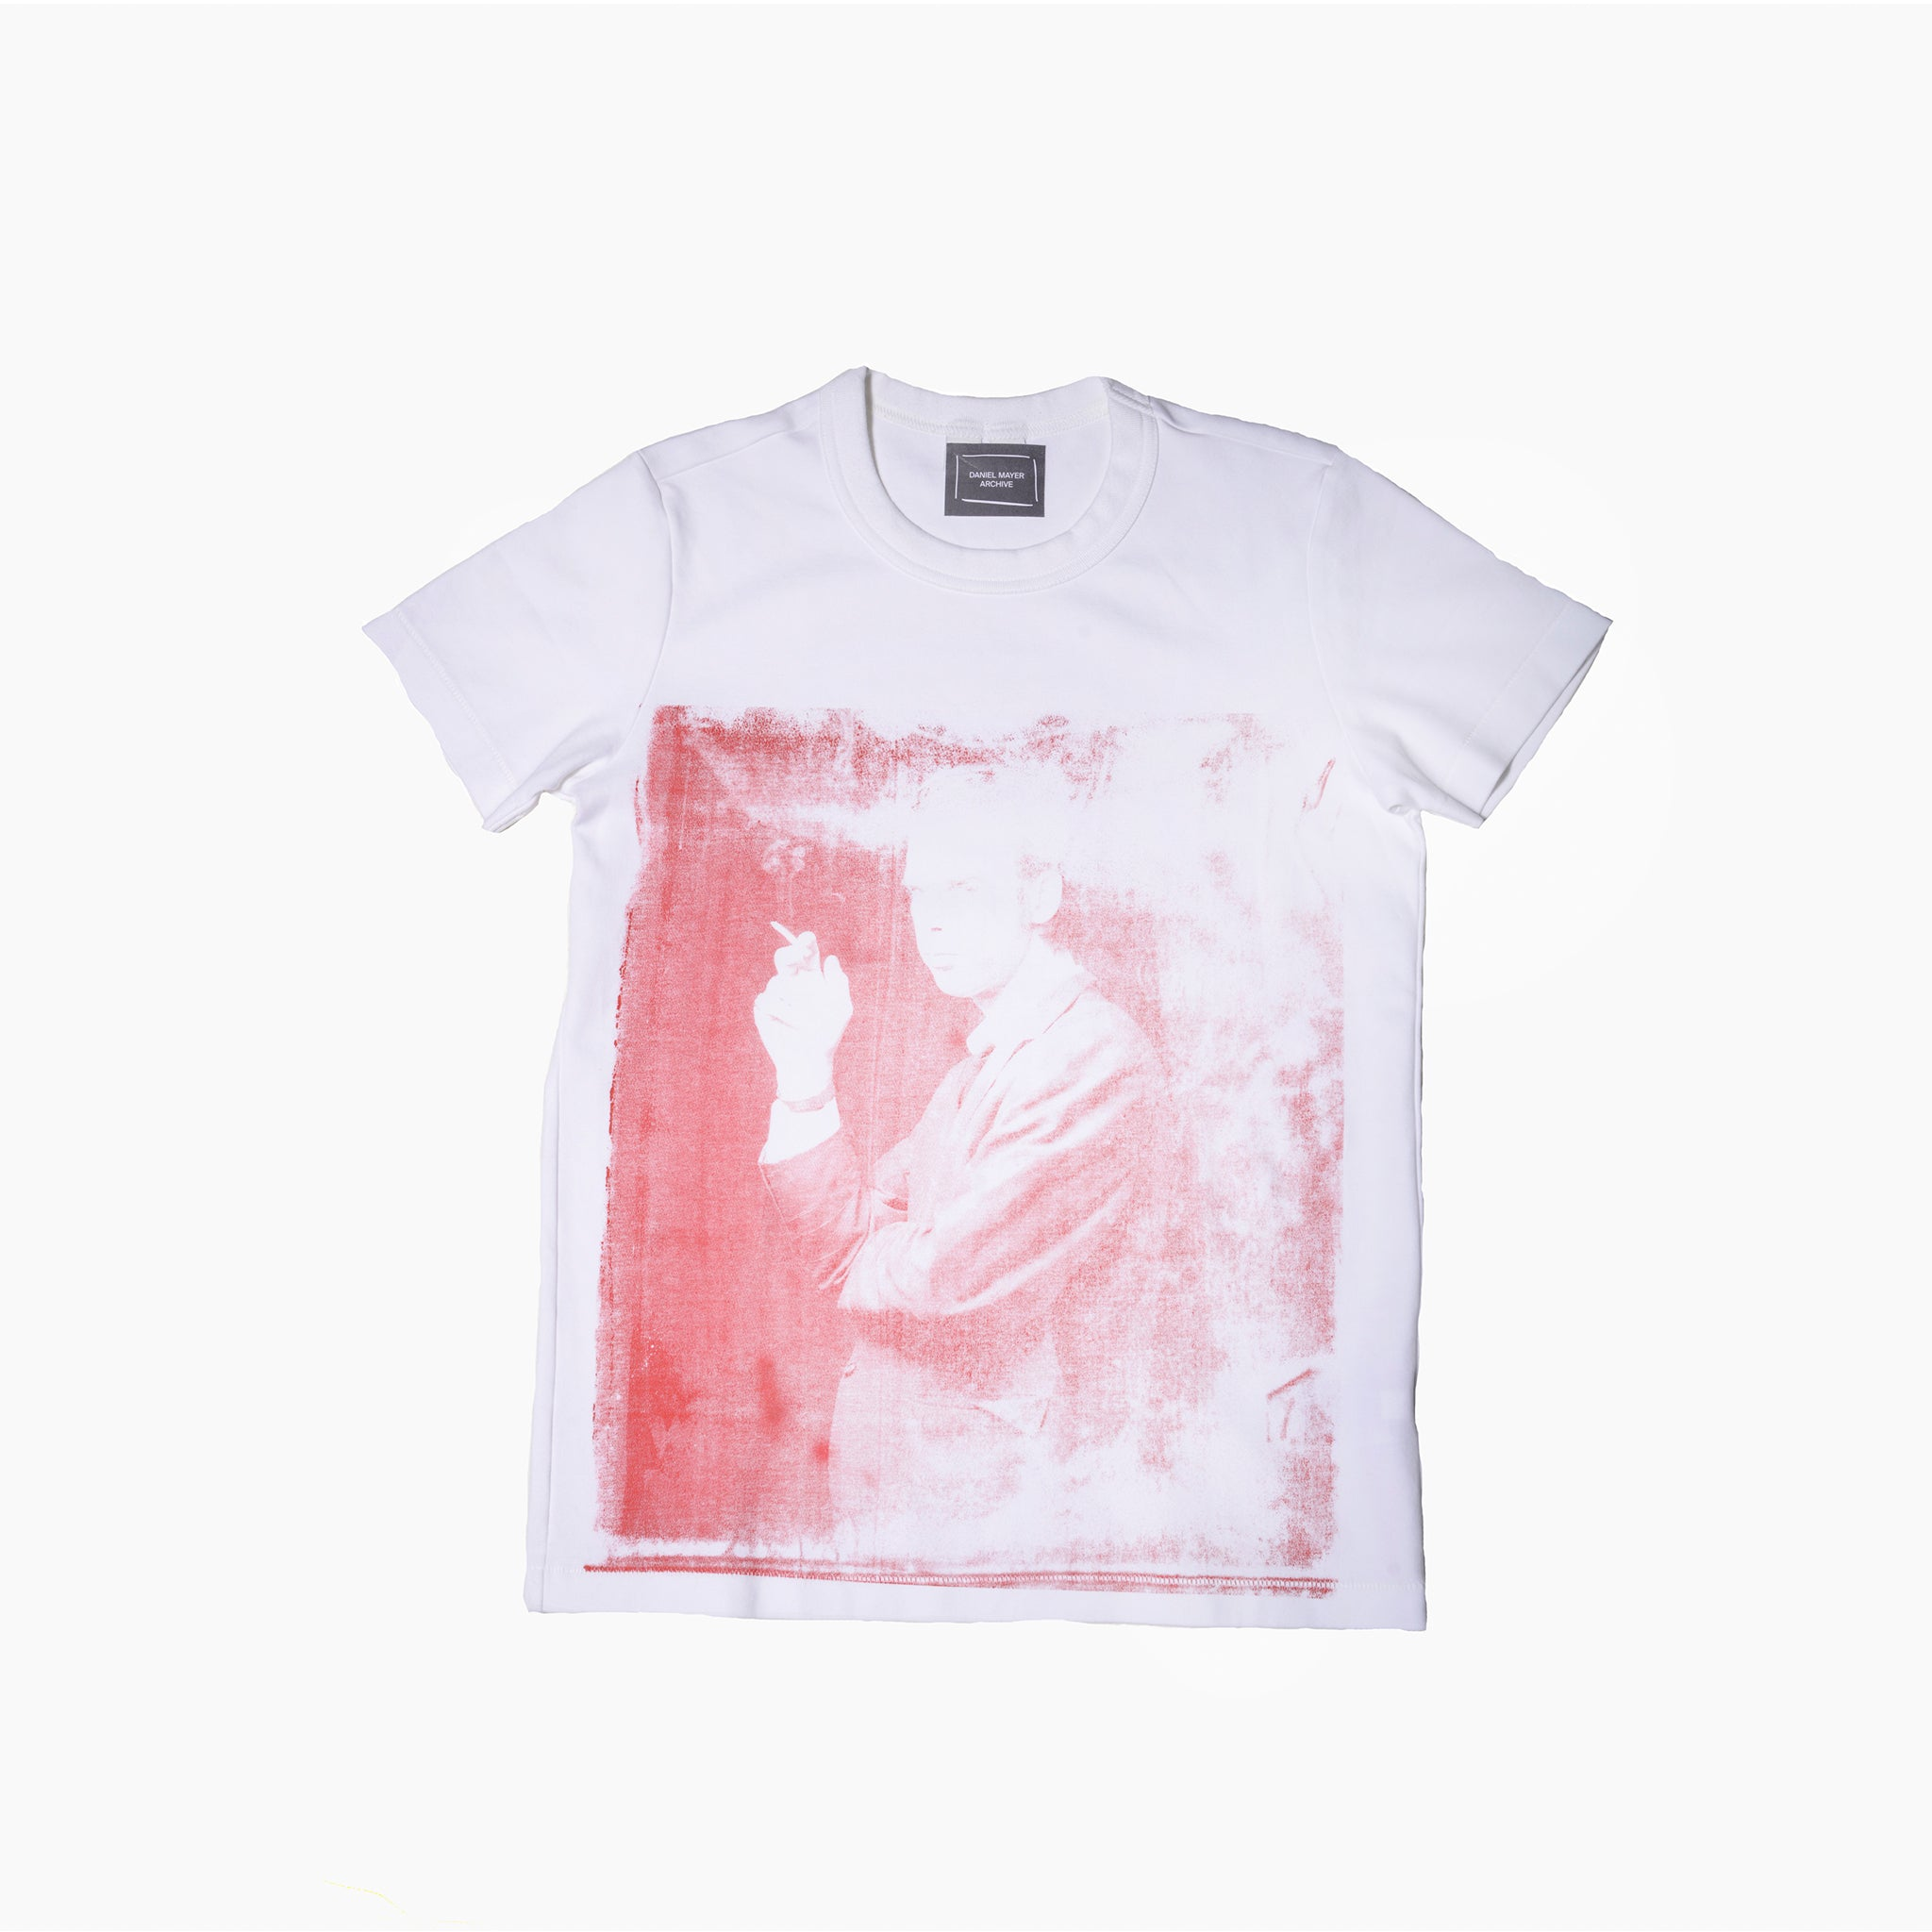 DANIEL MAYER ARCHIVE NickCave Nick Cave TShirt Shirt